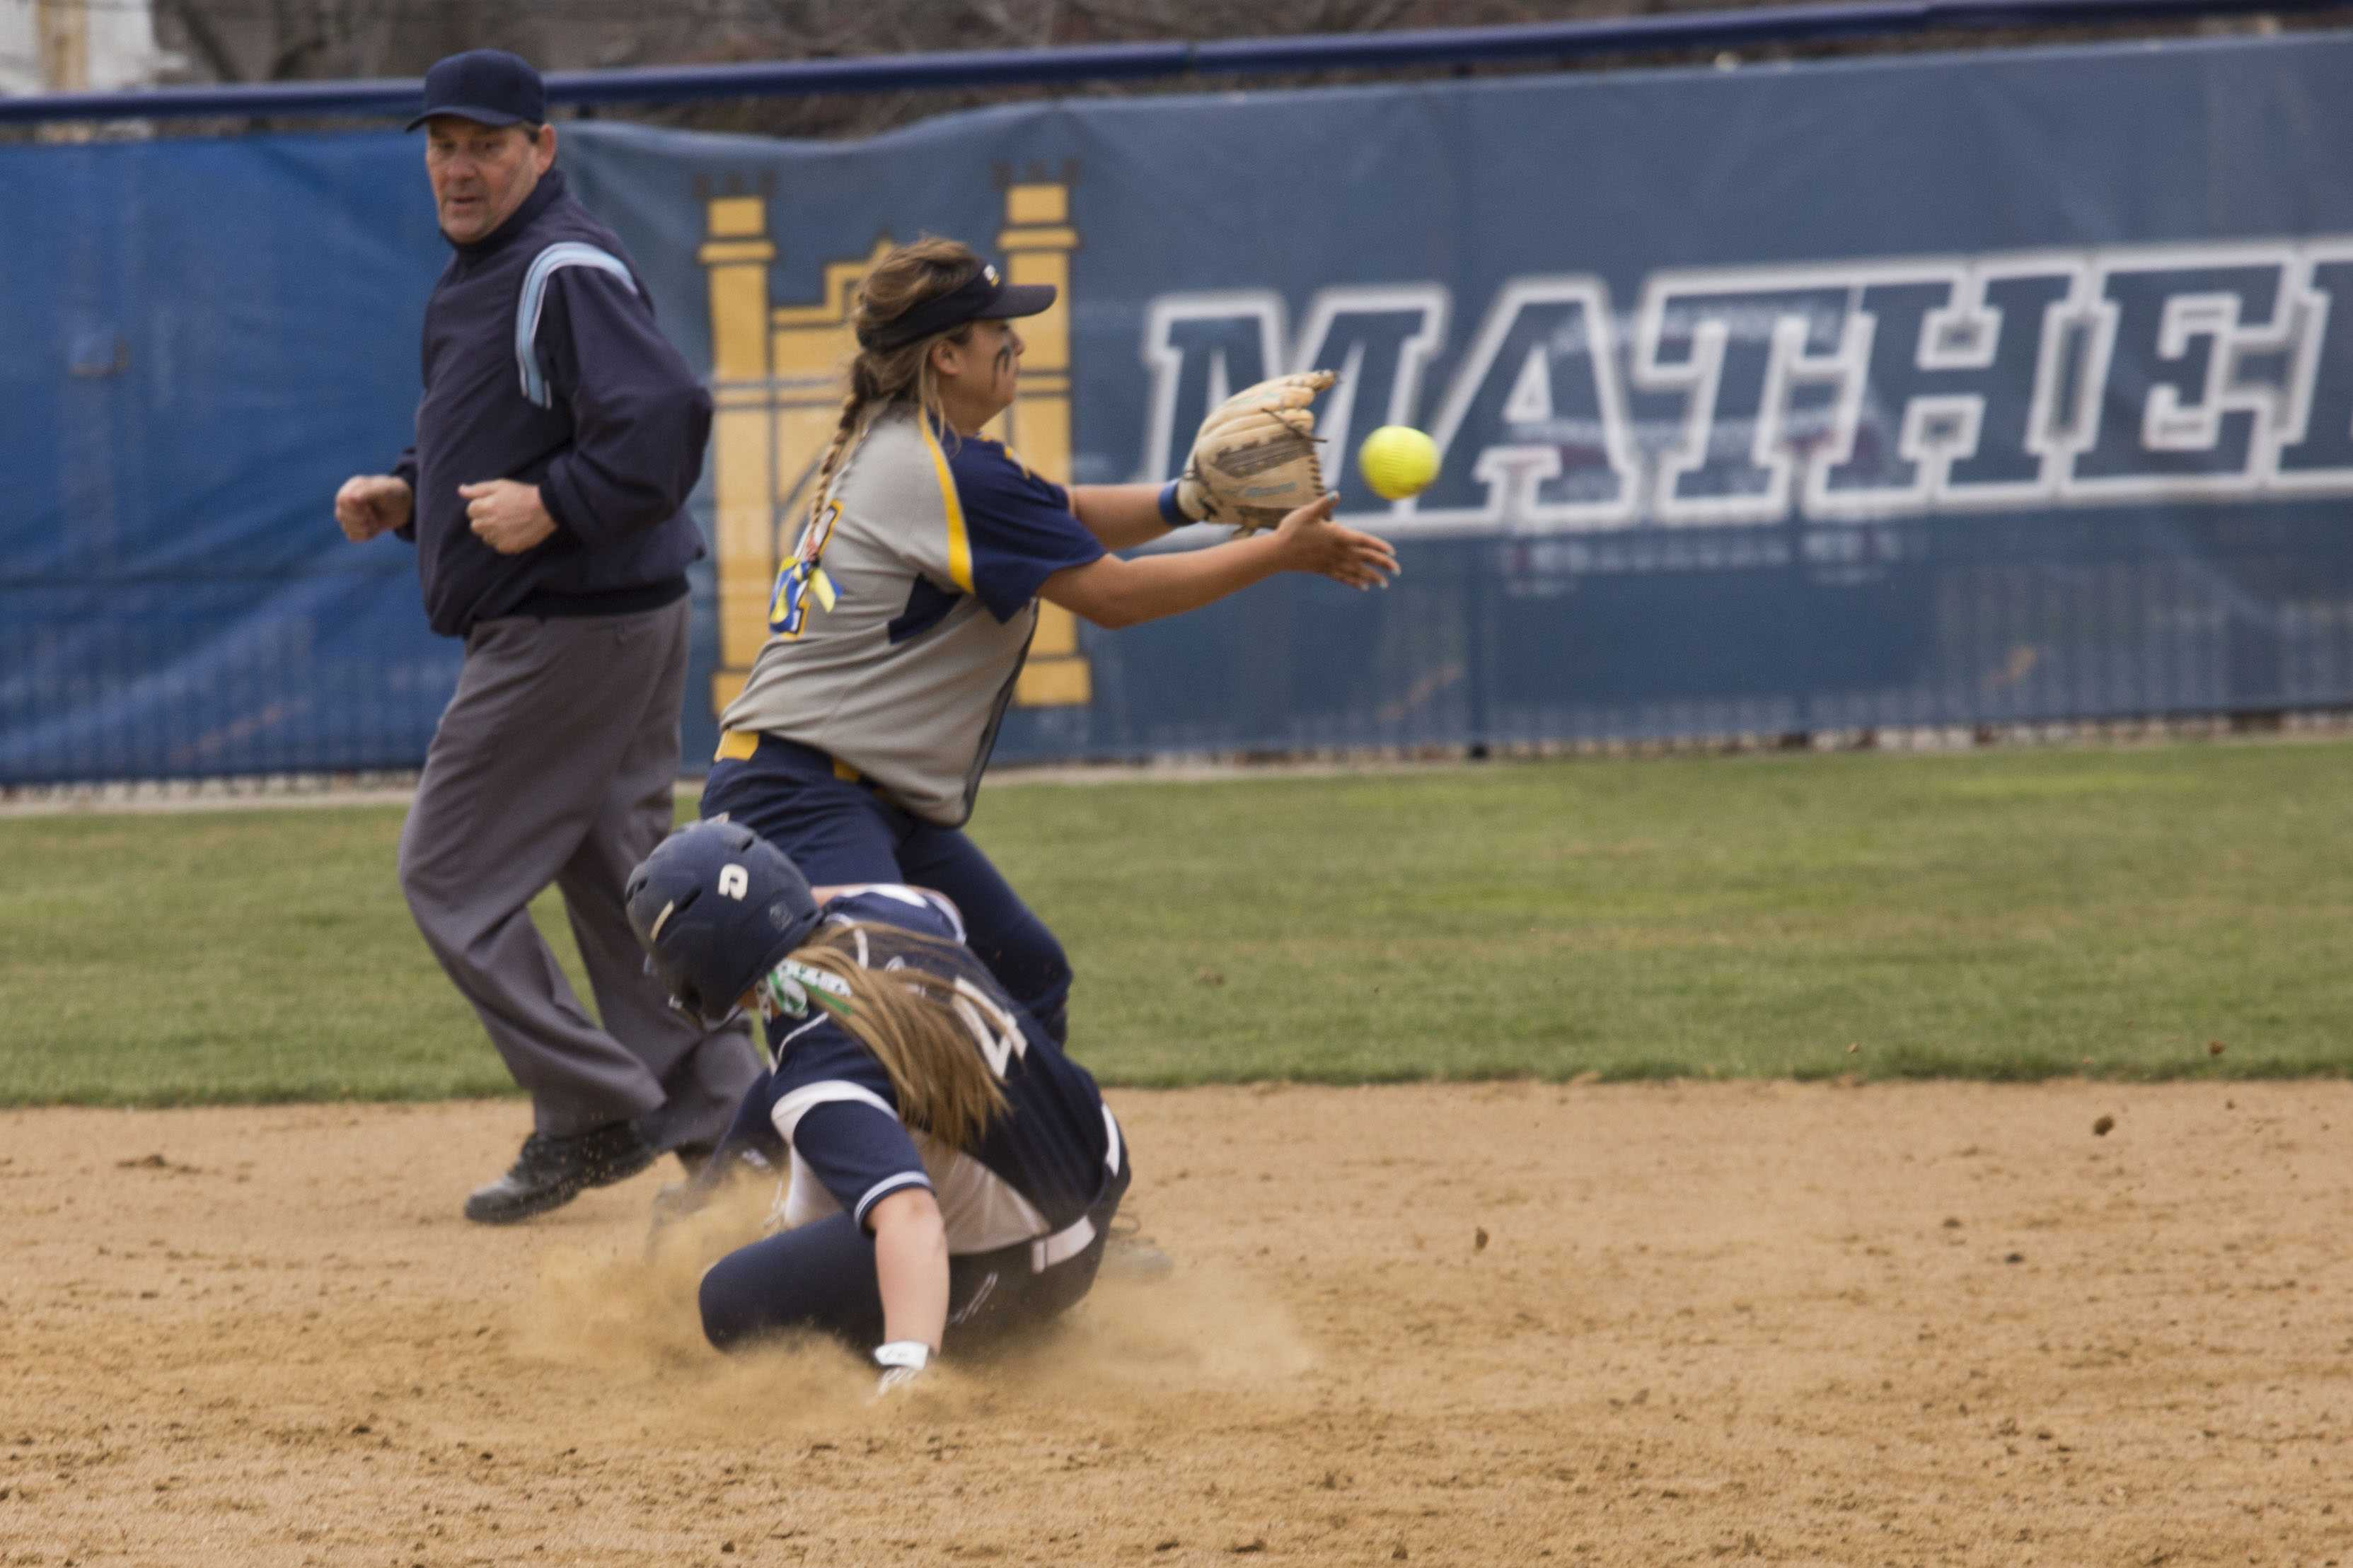 Nicole Doyle slides safely into second base during the Spartans' game against Emory University.